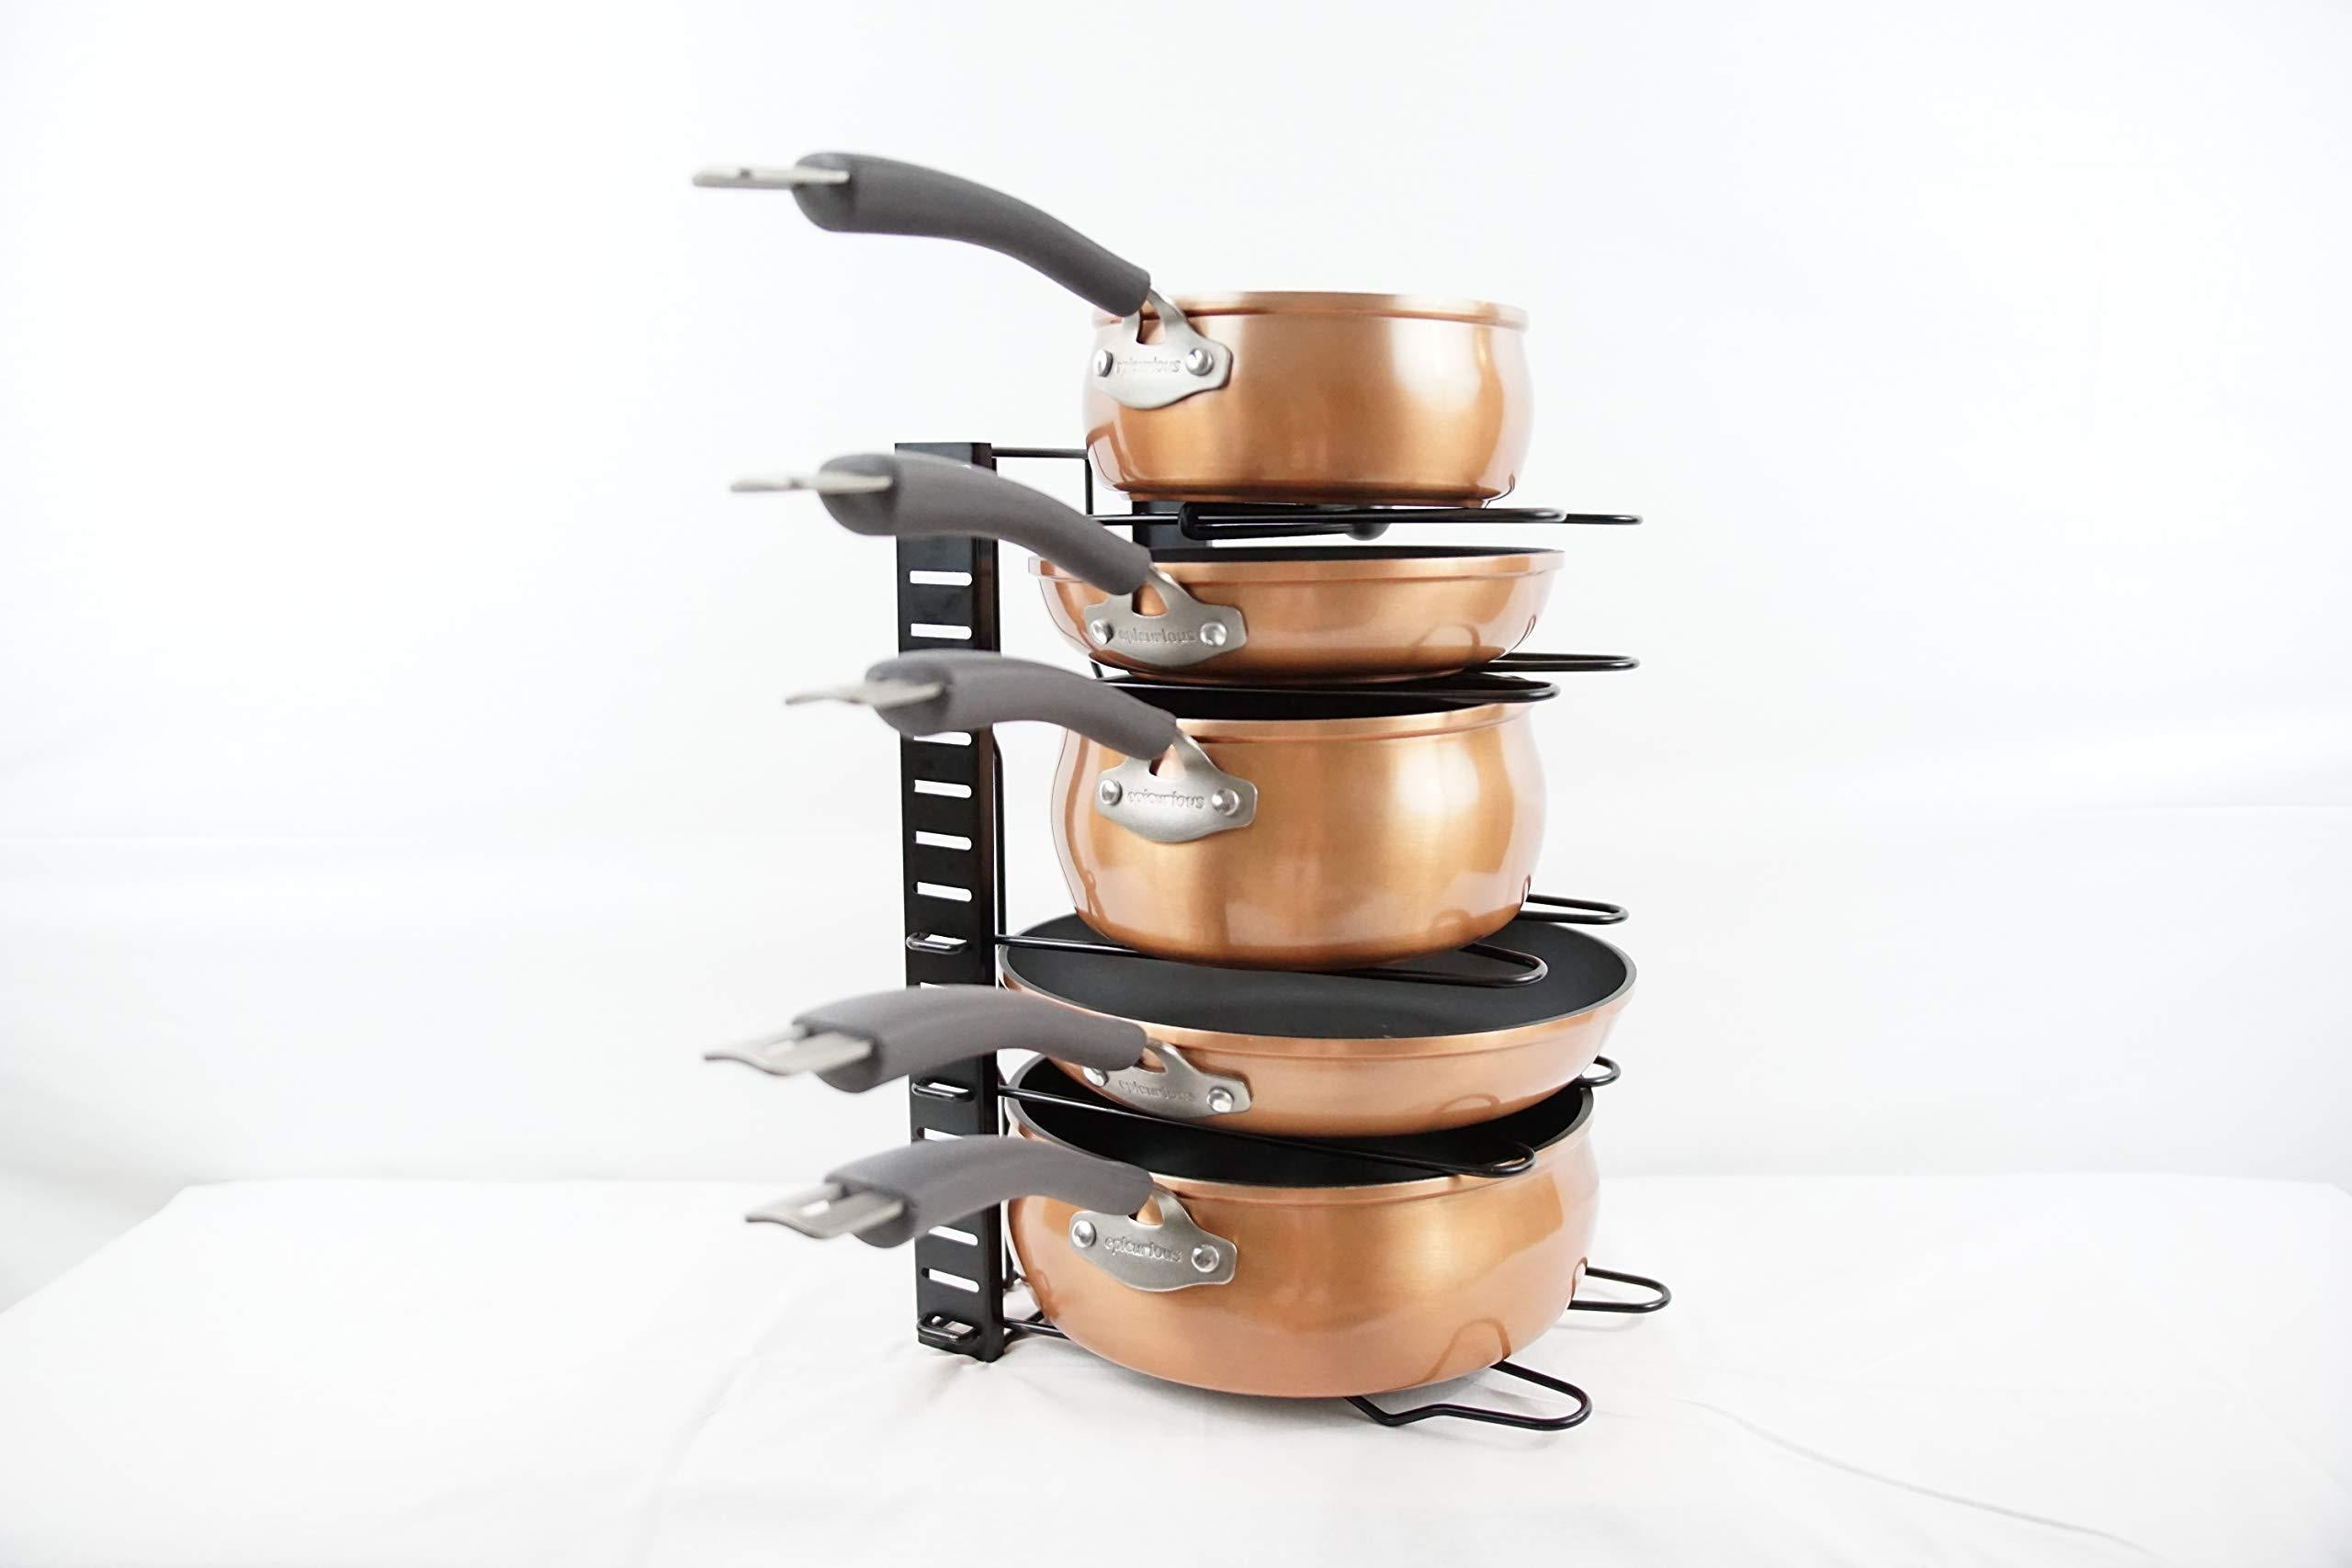 Select nice pot and pan organizer rack for cabinet home kitchen storage pan holder cabinet pot organizer 8 tier adjustable heights expandable pot organizer for under cabinet